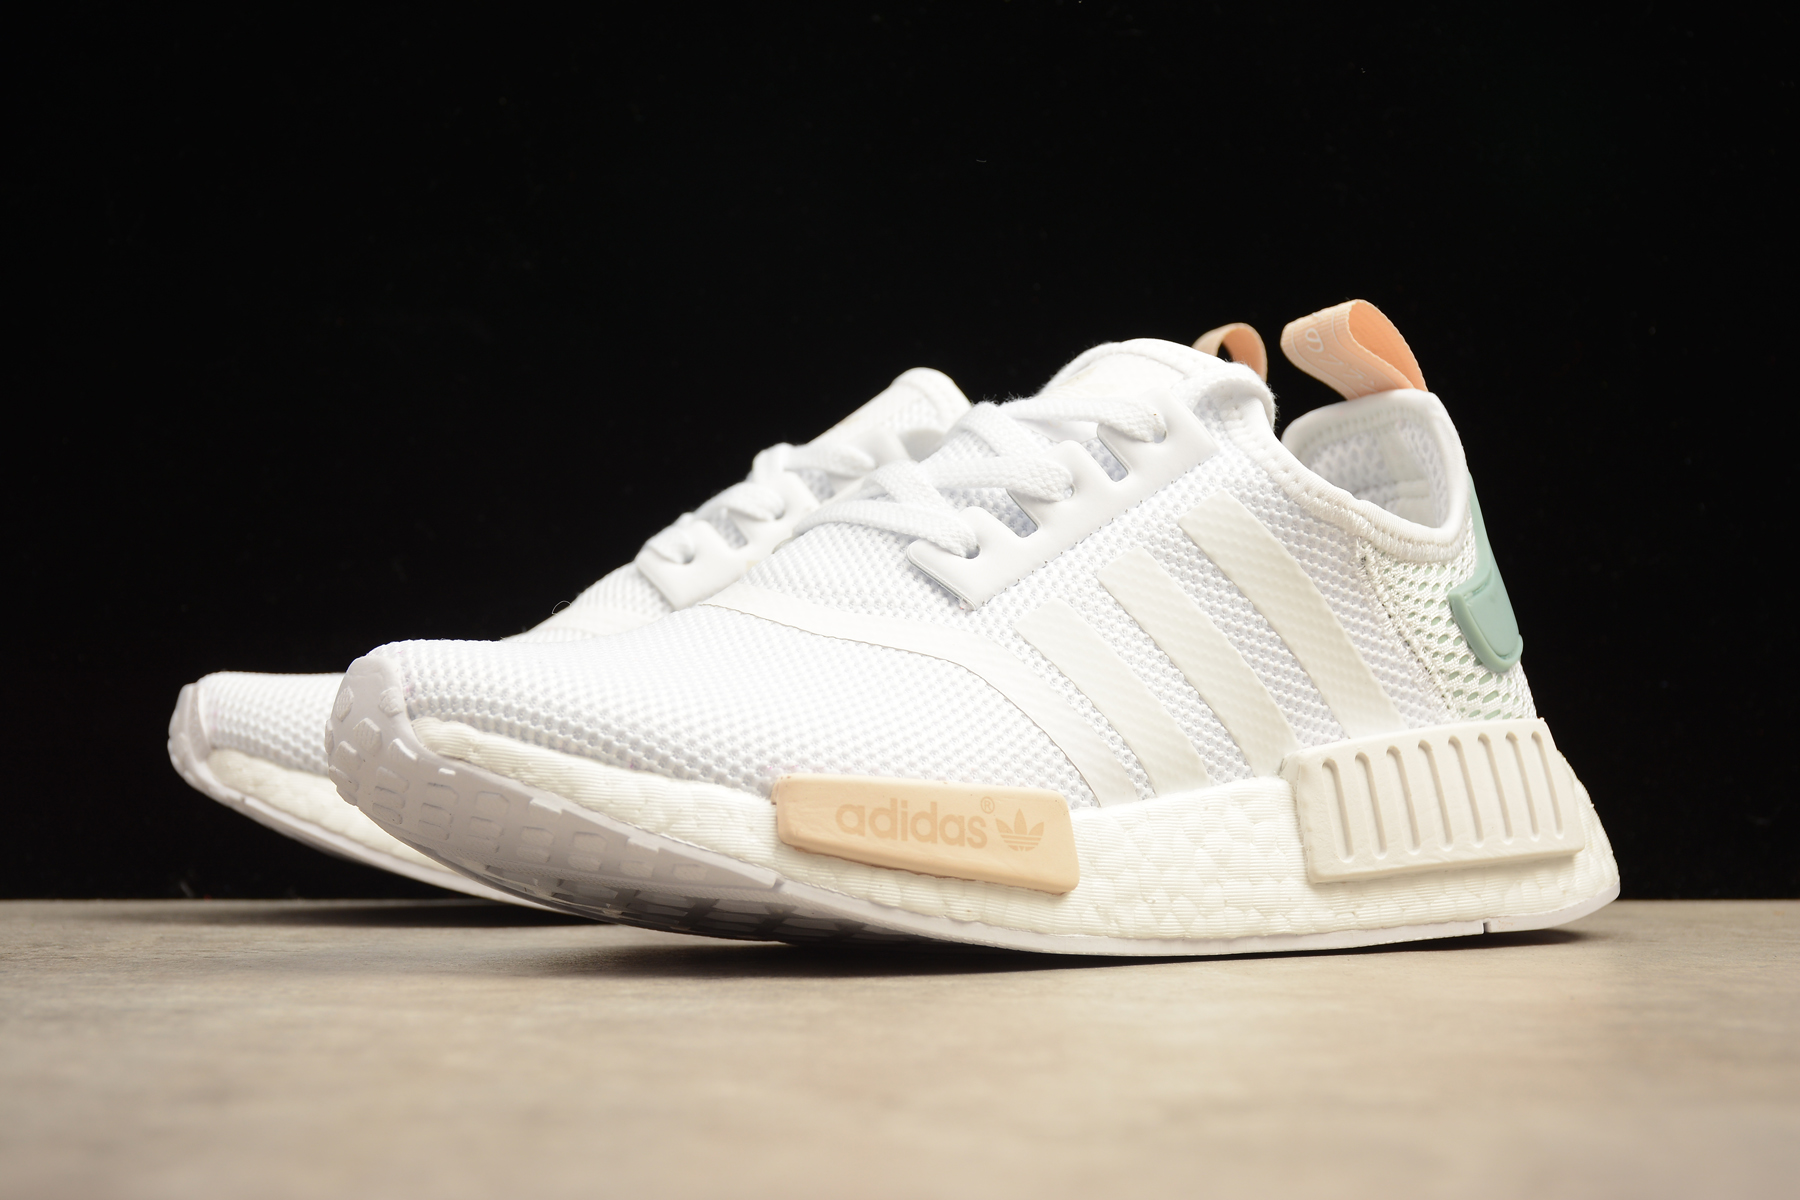 new arrival fb78f c8240 Adidas NMD R1 Boost runner White mint orange shoes from superstar